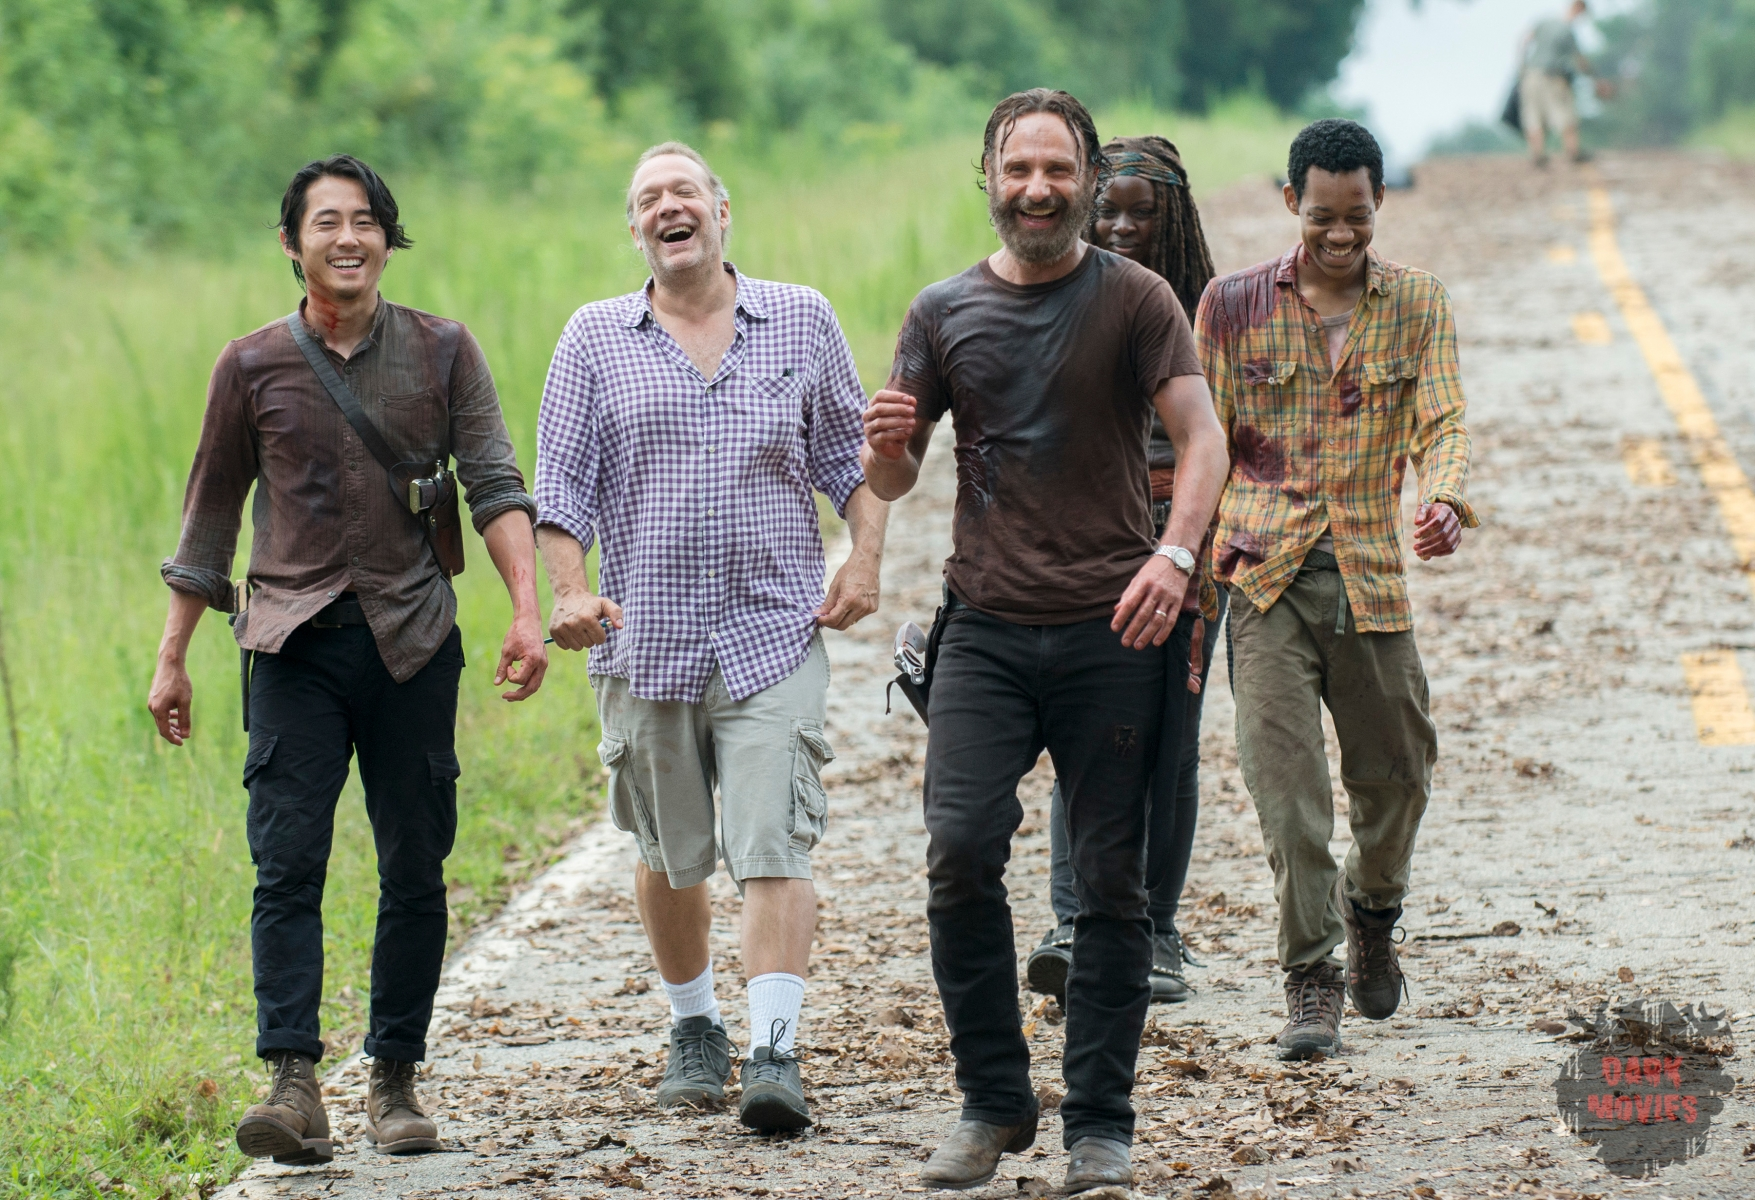 Steven Yeun, Greg Nicotero, Andrew Lincoln, Danai Gurira and Tyler James Williams - The Walking Dead _ Season 5, Episode 9 _ BTS - Photo Credit: Gene Page/AMC